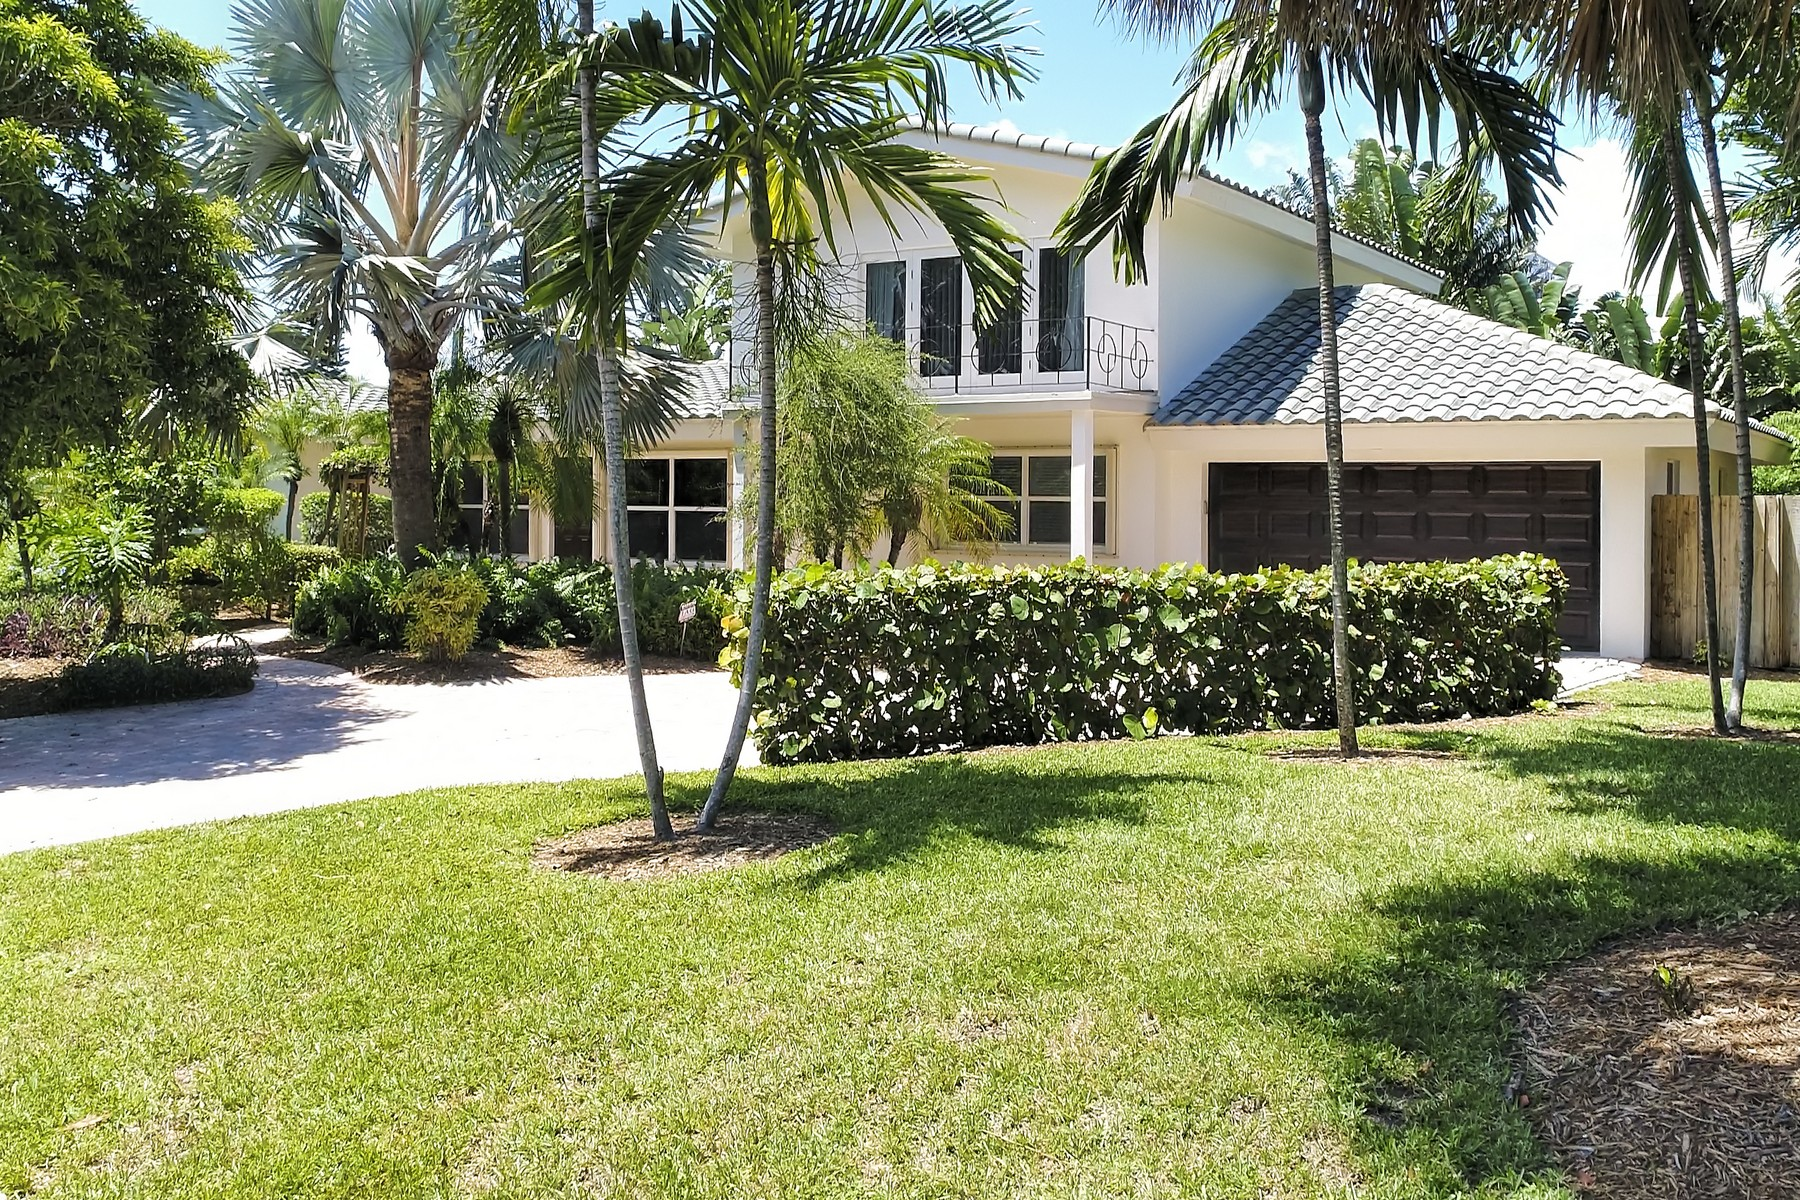 House for Sale at 2003 Bay Dr, Pompano Beach, FL 33062 2003 Bay Dr Pompano Beach, Florida 33062 United States